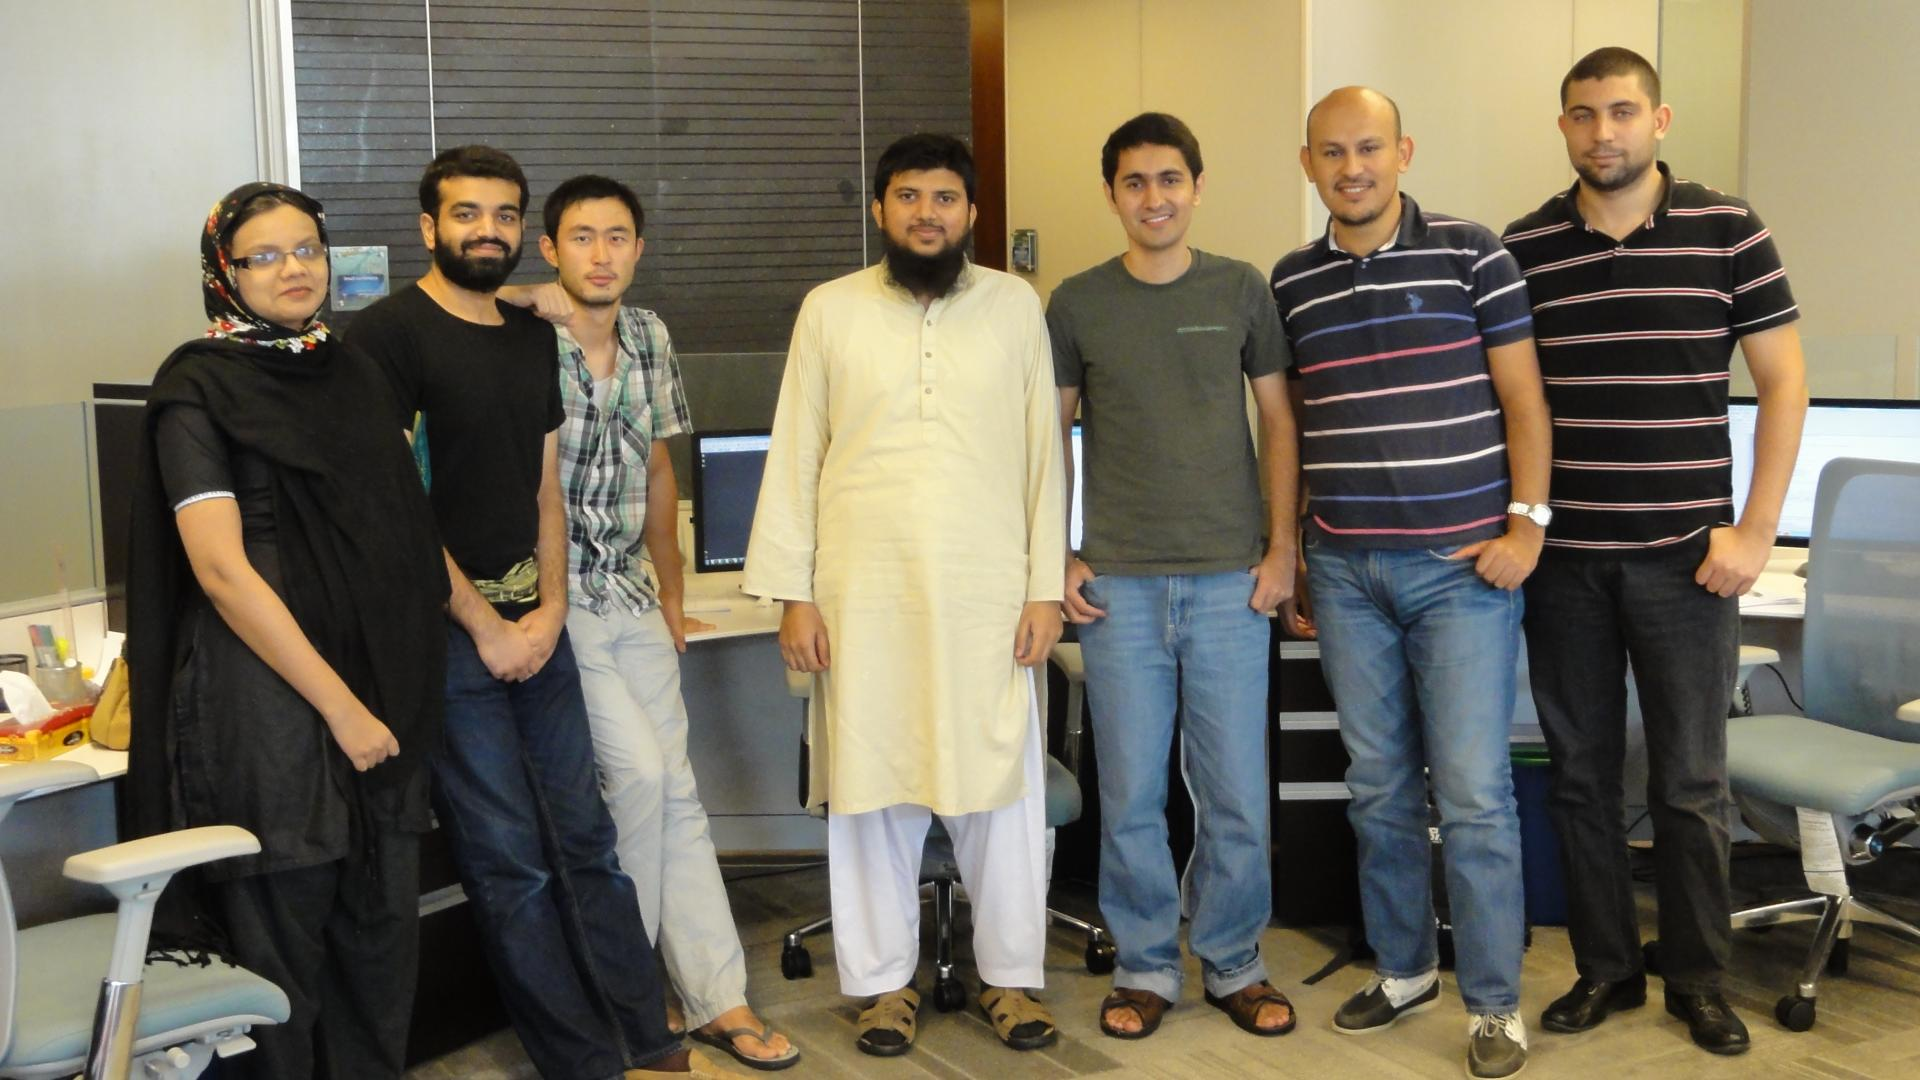 Faraan Rashid With Hina, Ammar, Anlei, Fahd, Mahdi and Hakim on His Farewell